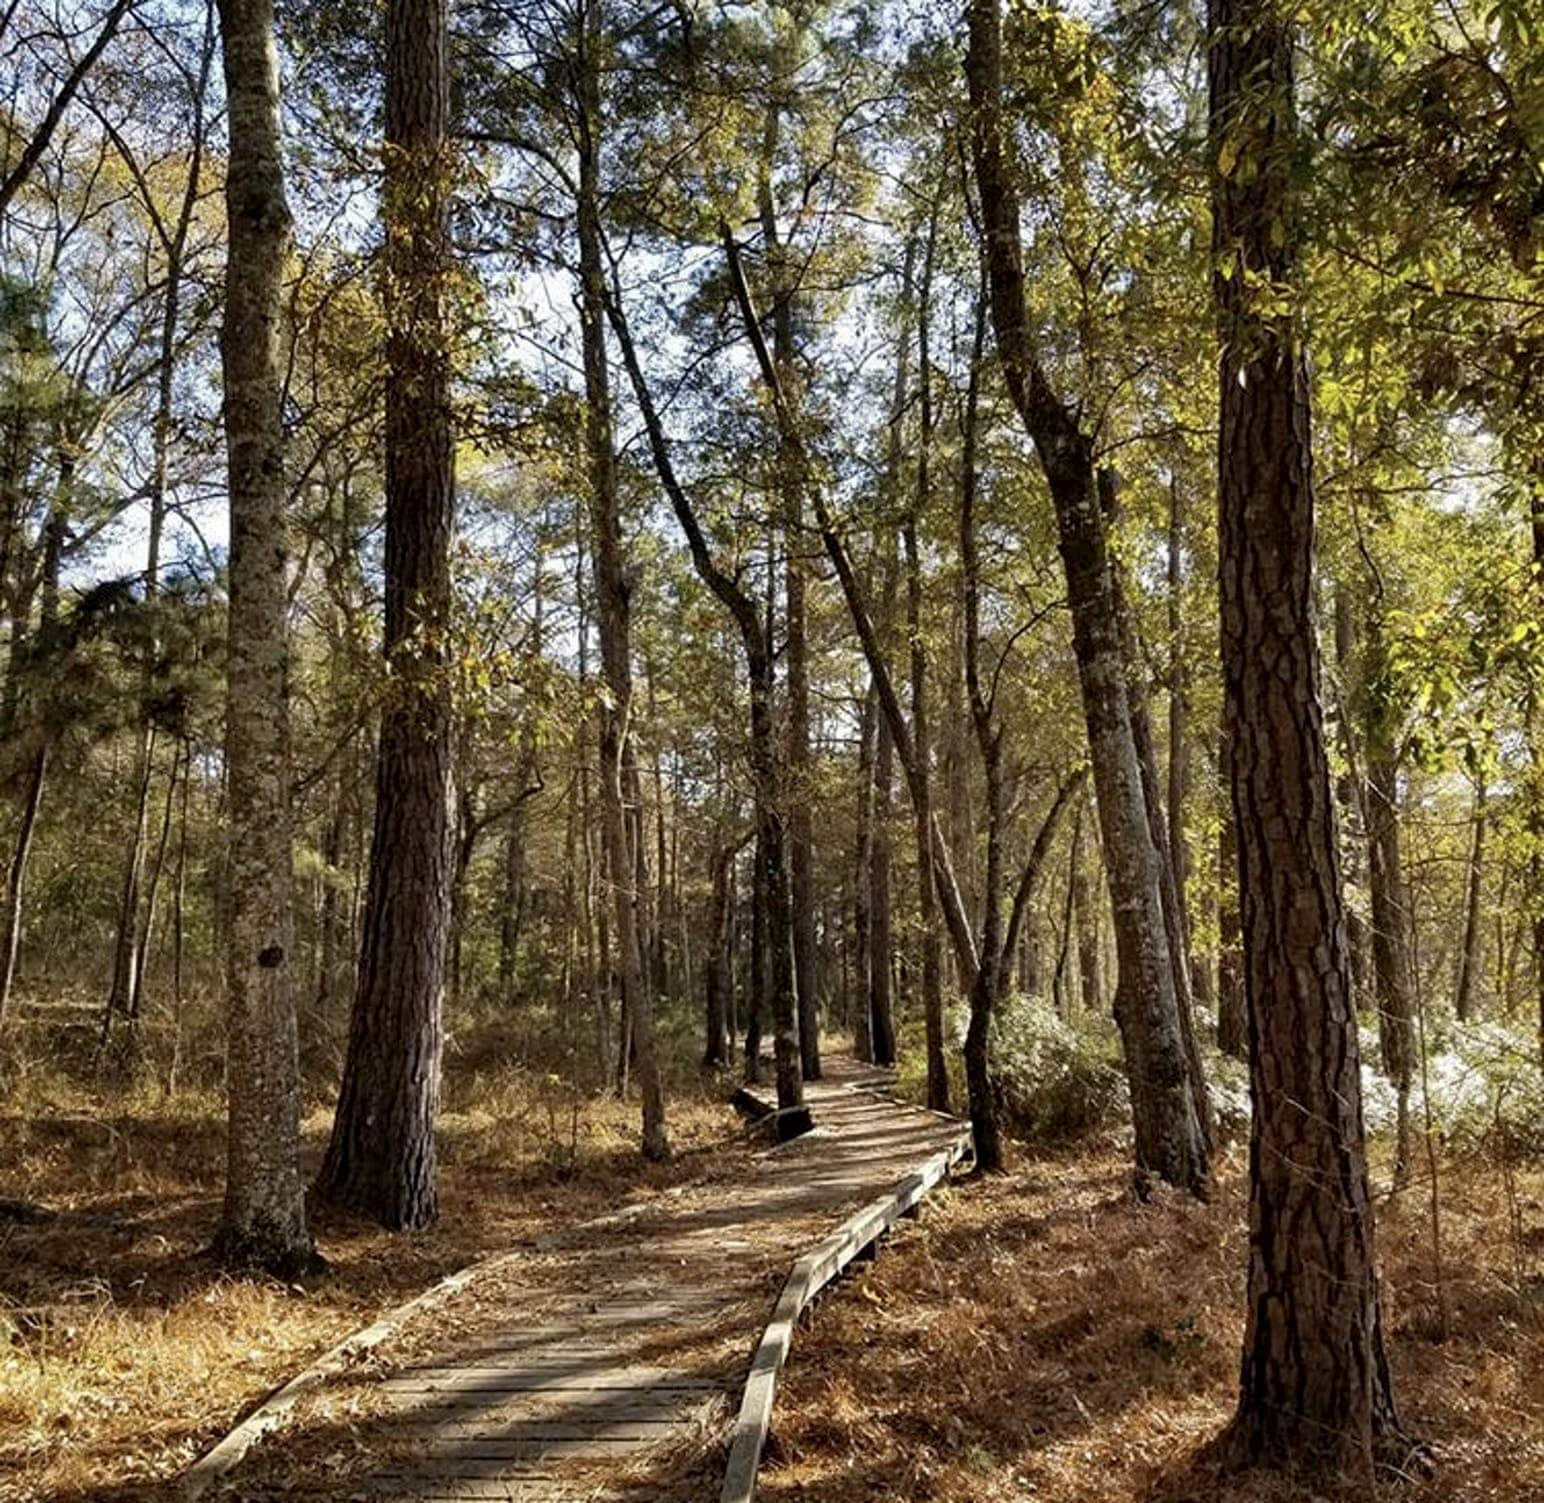 Wooden boardwalk winding through a wooded area.